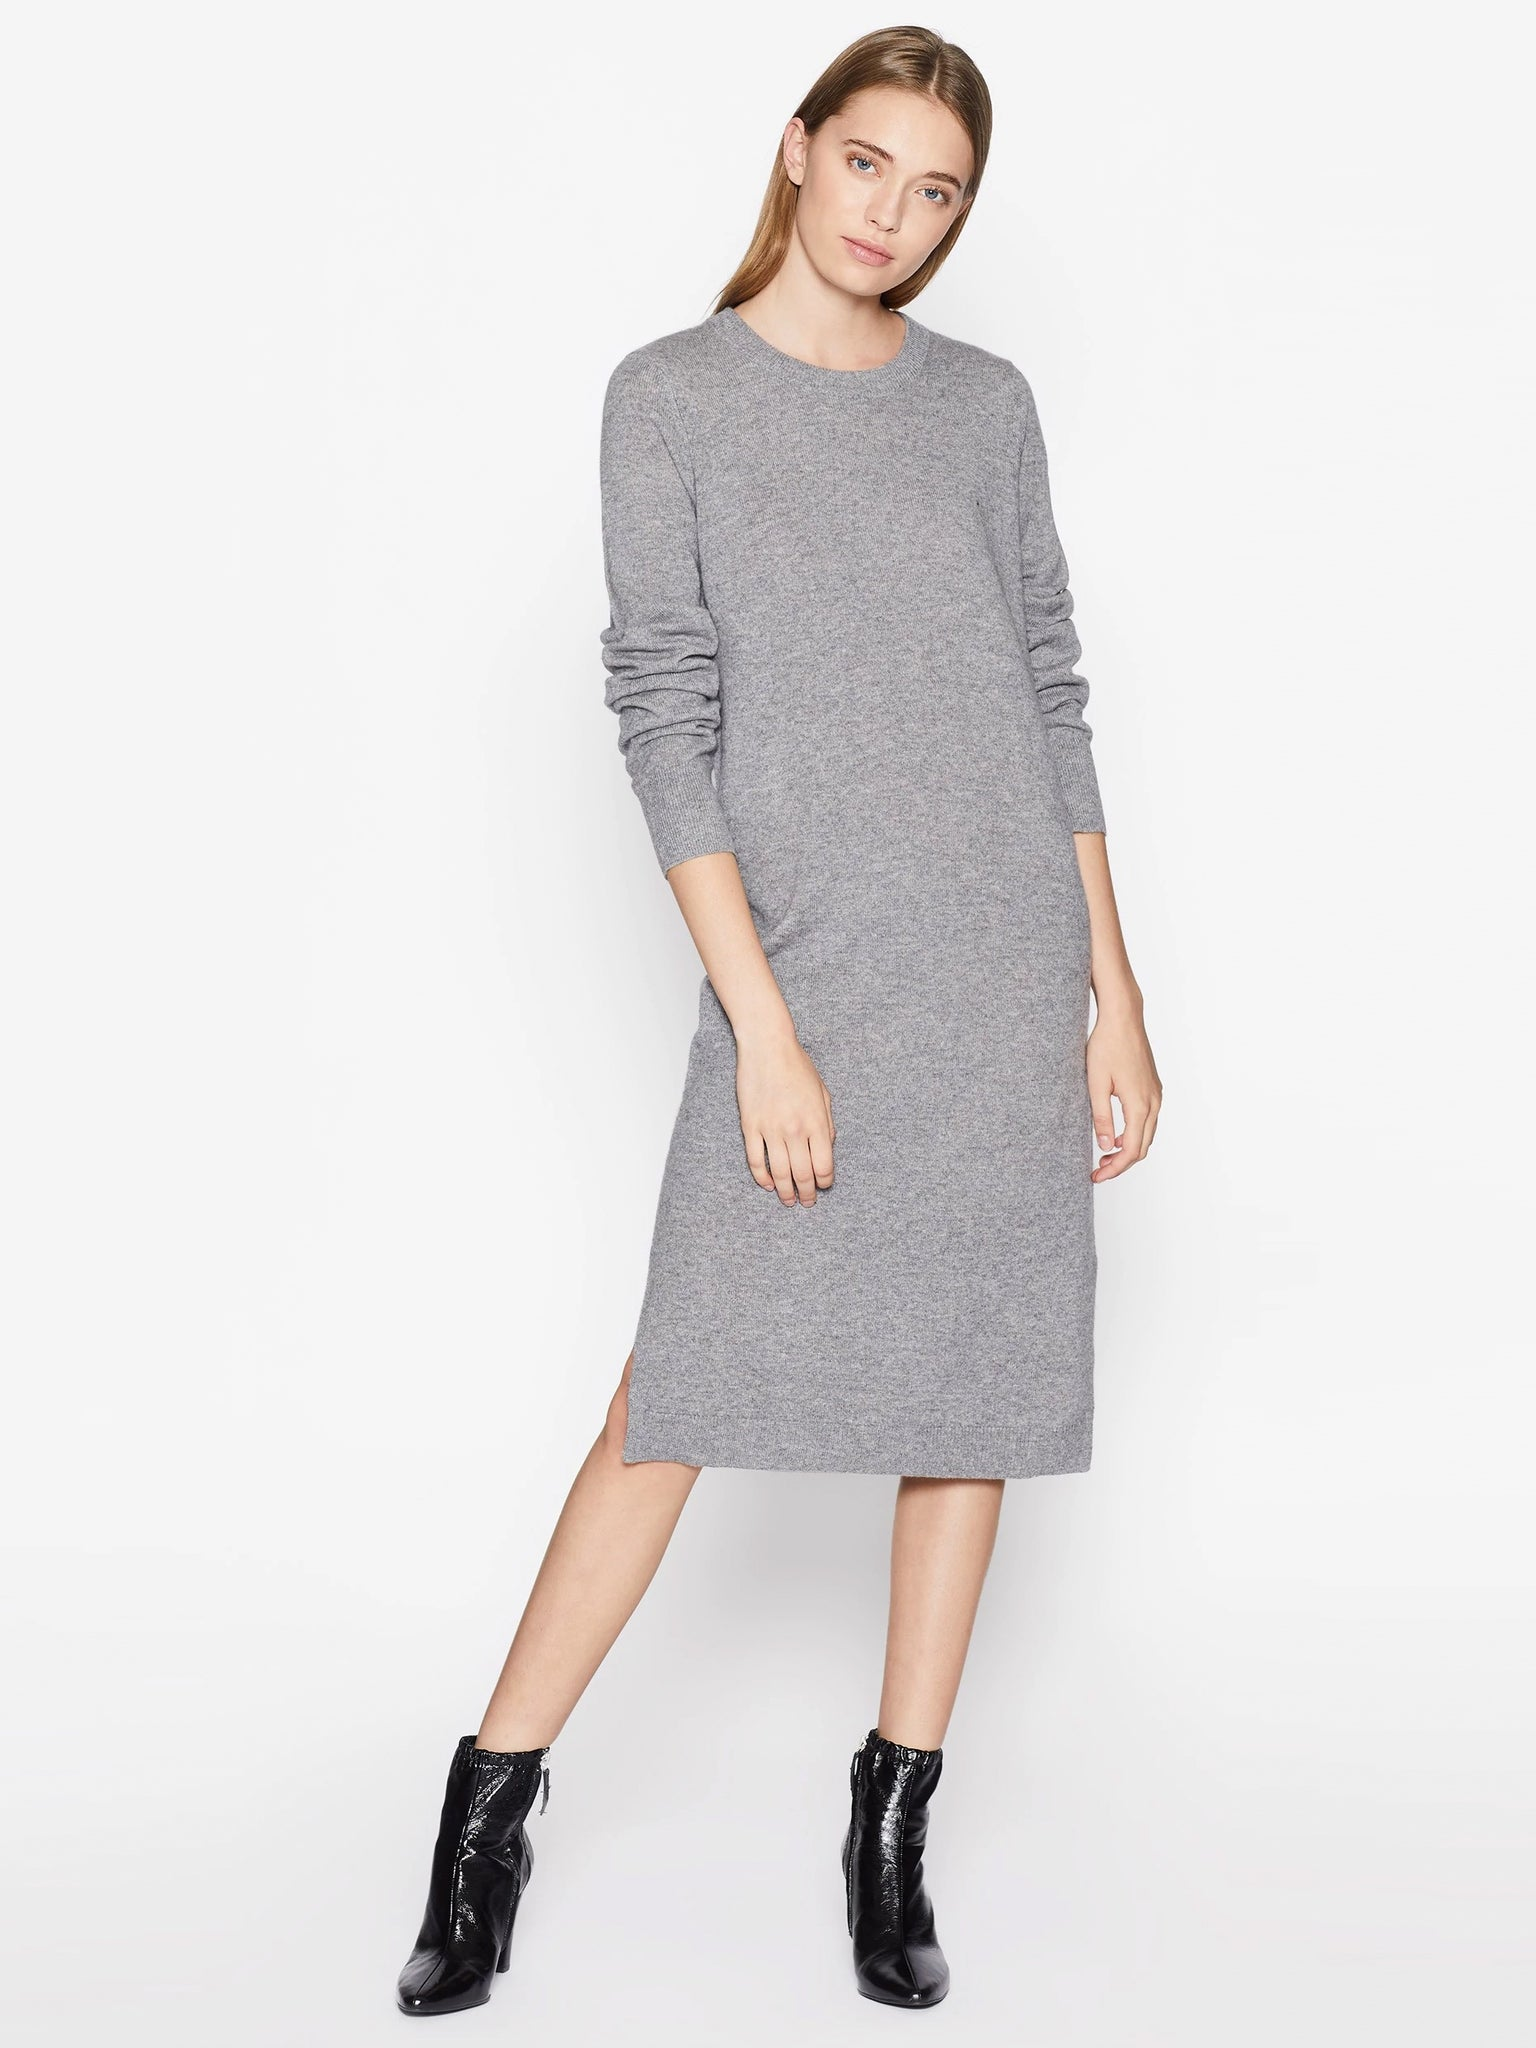 Equipment Snyder Cashmere Sweater Dress - Heather Grey | TILDEN